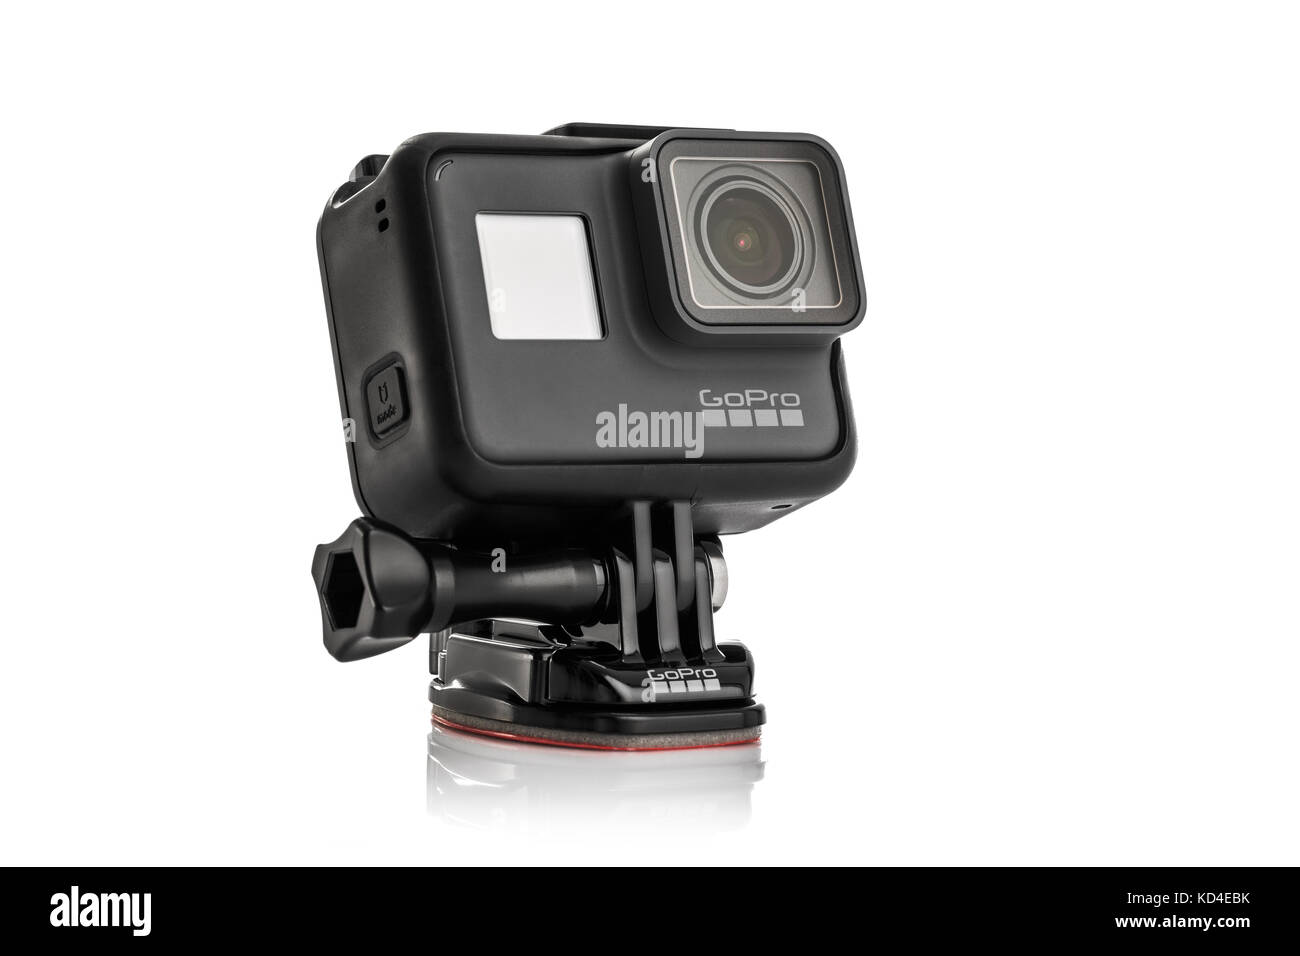 Varna, Bulgaria - March 9, 2017: GoPro Hero 5 Black isolated on white background.manufactured by GoPro Inc - Stock Image